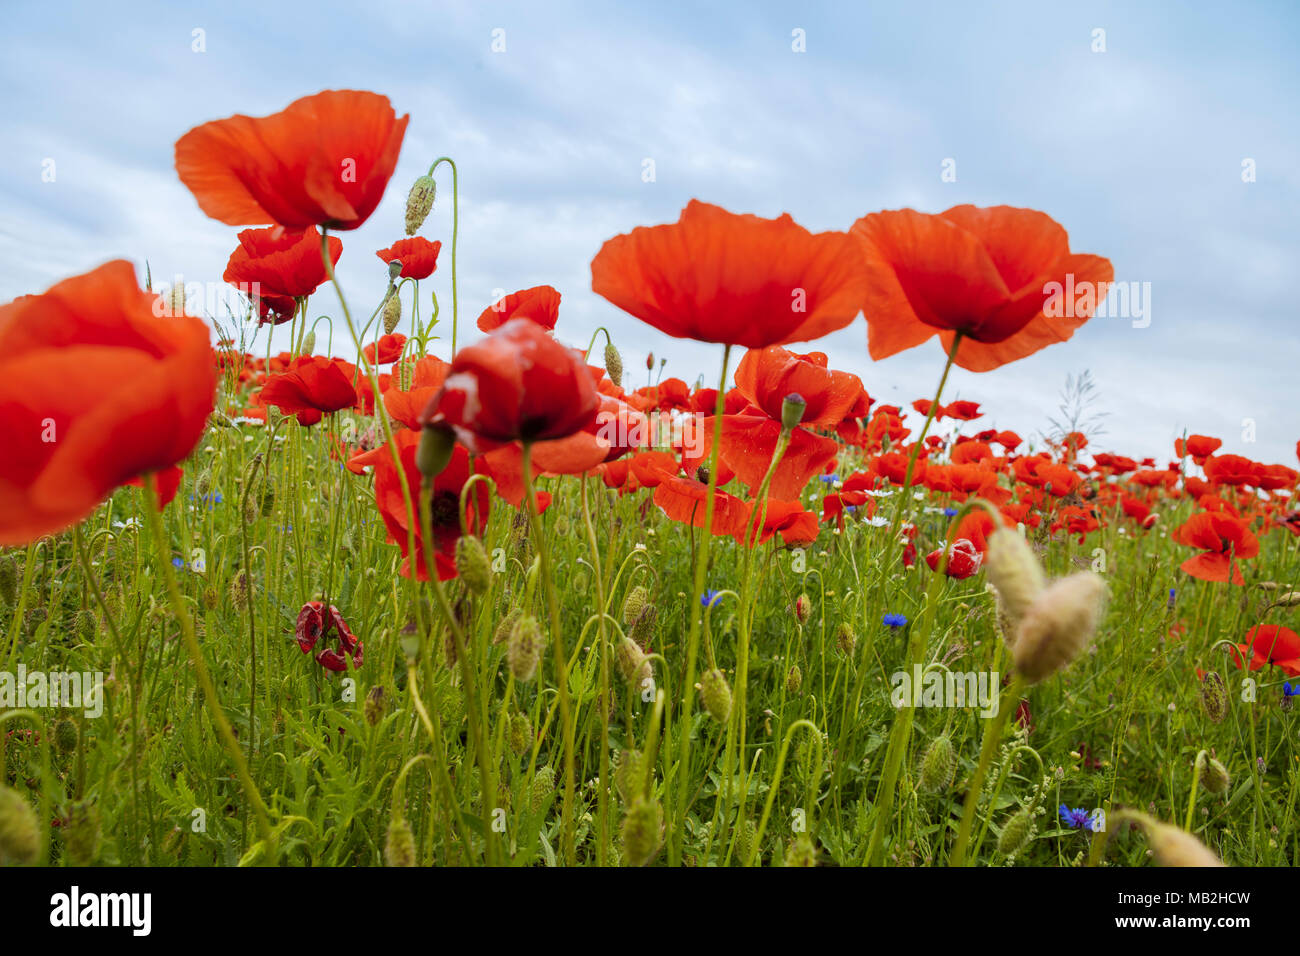 Natural beauty of red poppies - Stock Image